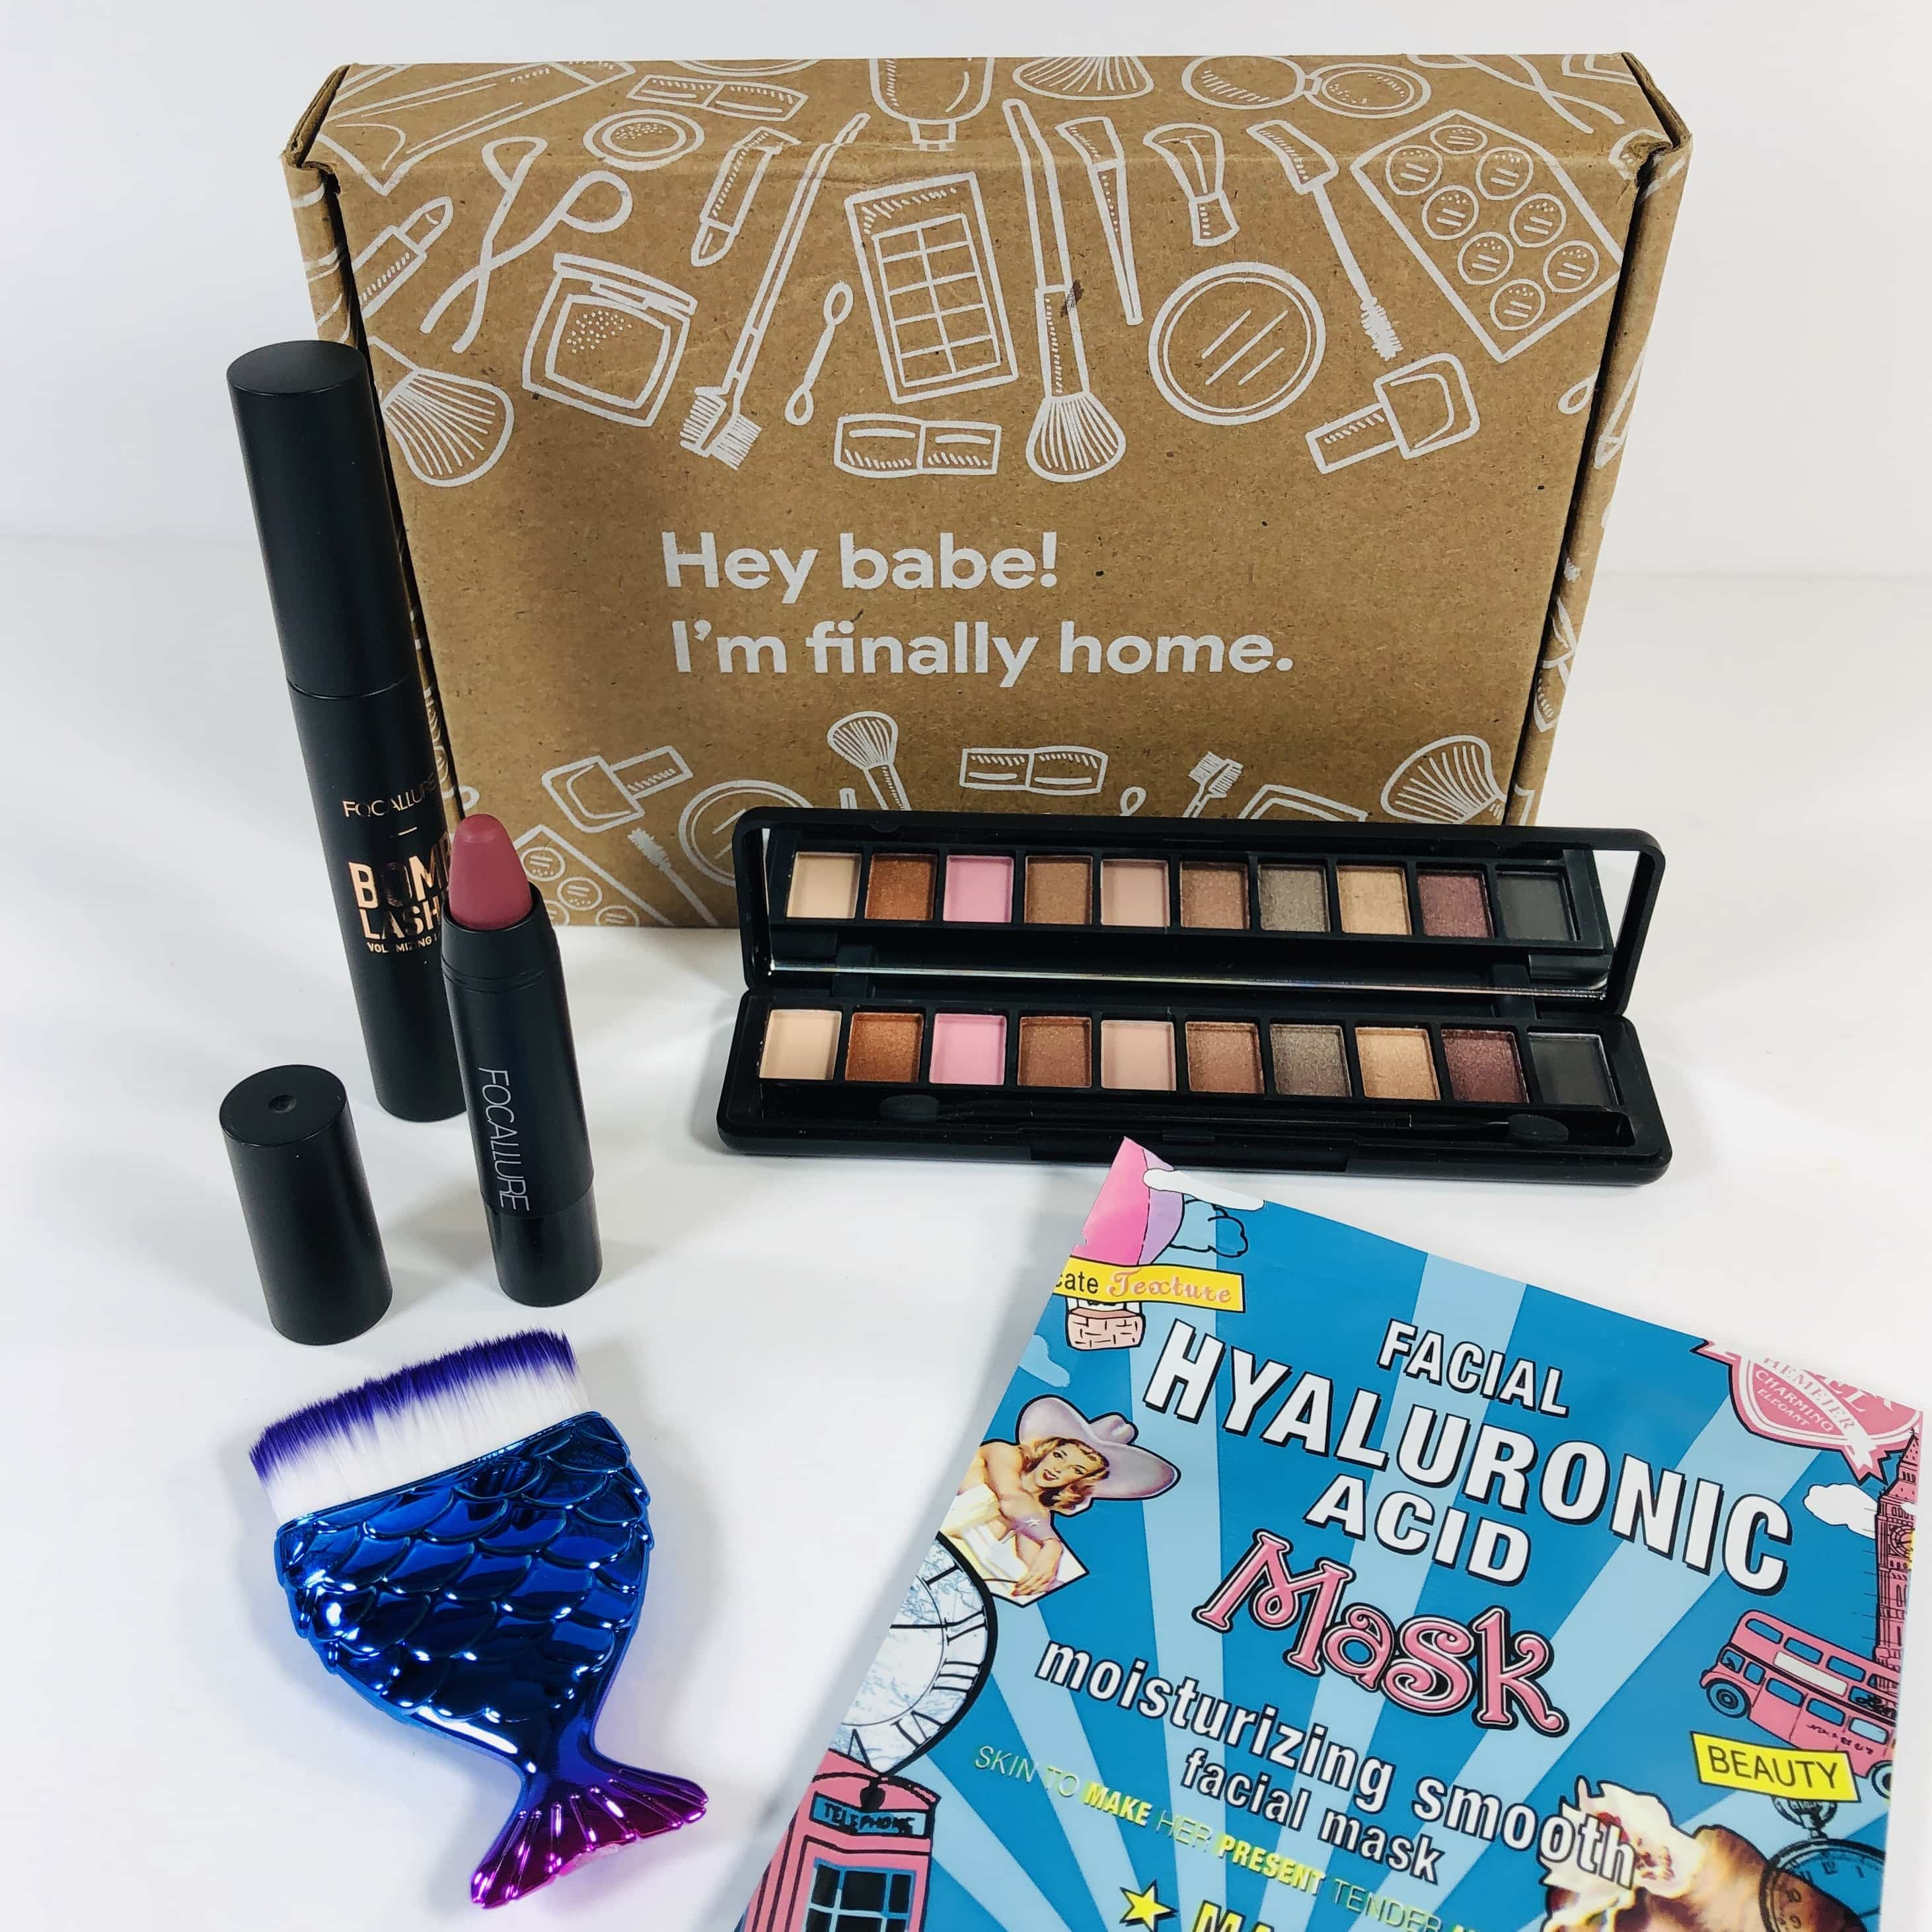 BabeBox by Focallure April 2019 Subscription Box Review